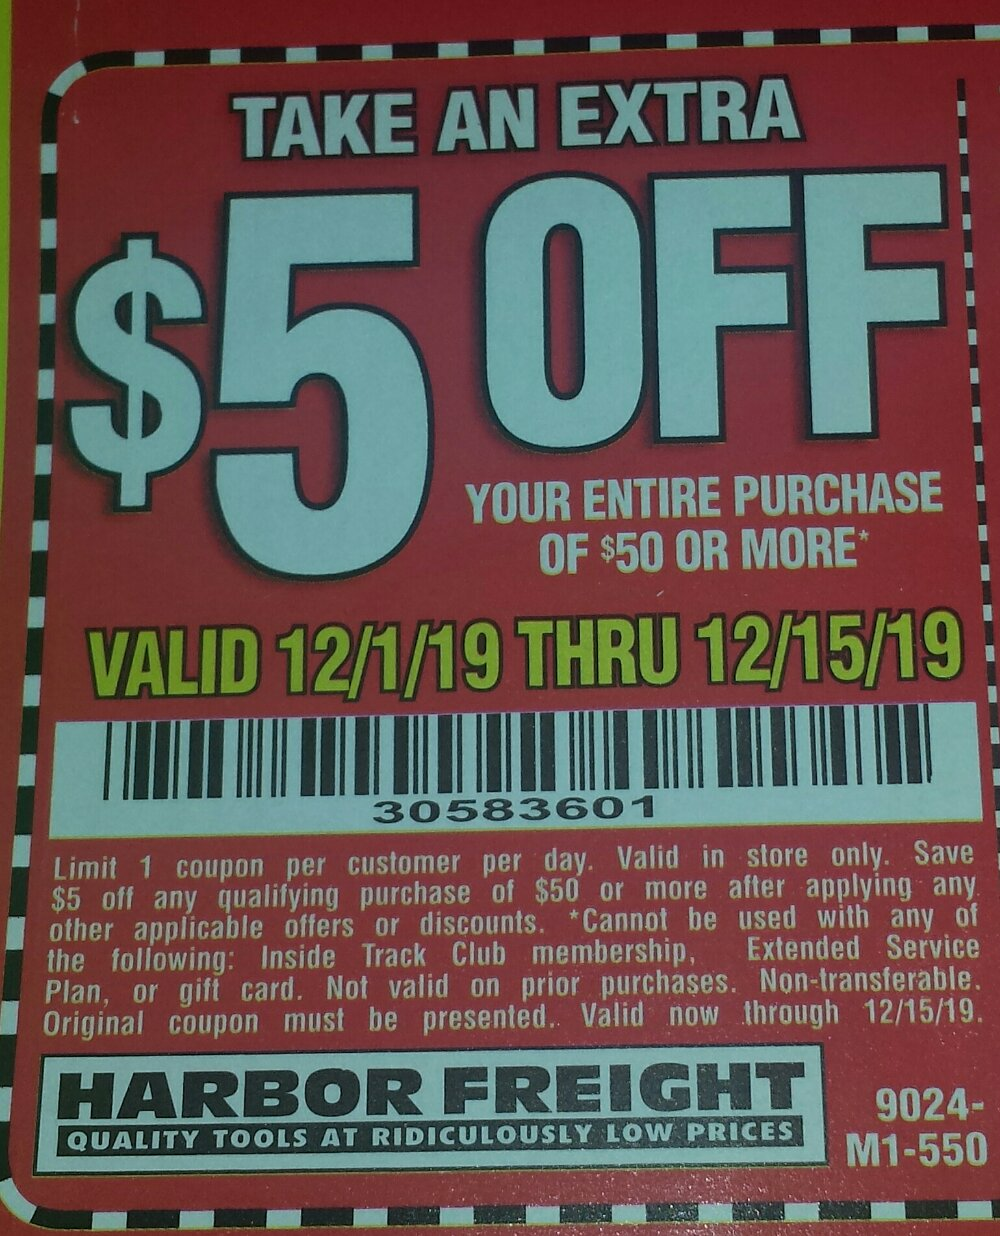 Harbor Freight Coupon, HF Coupons - $5 off $50